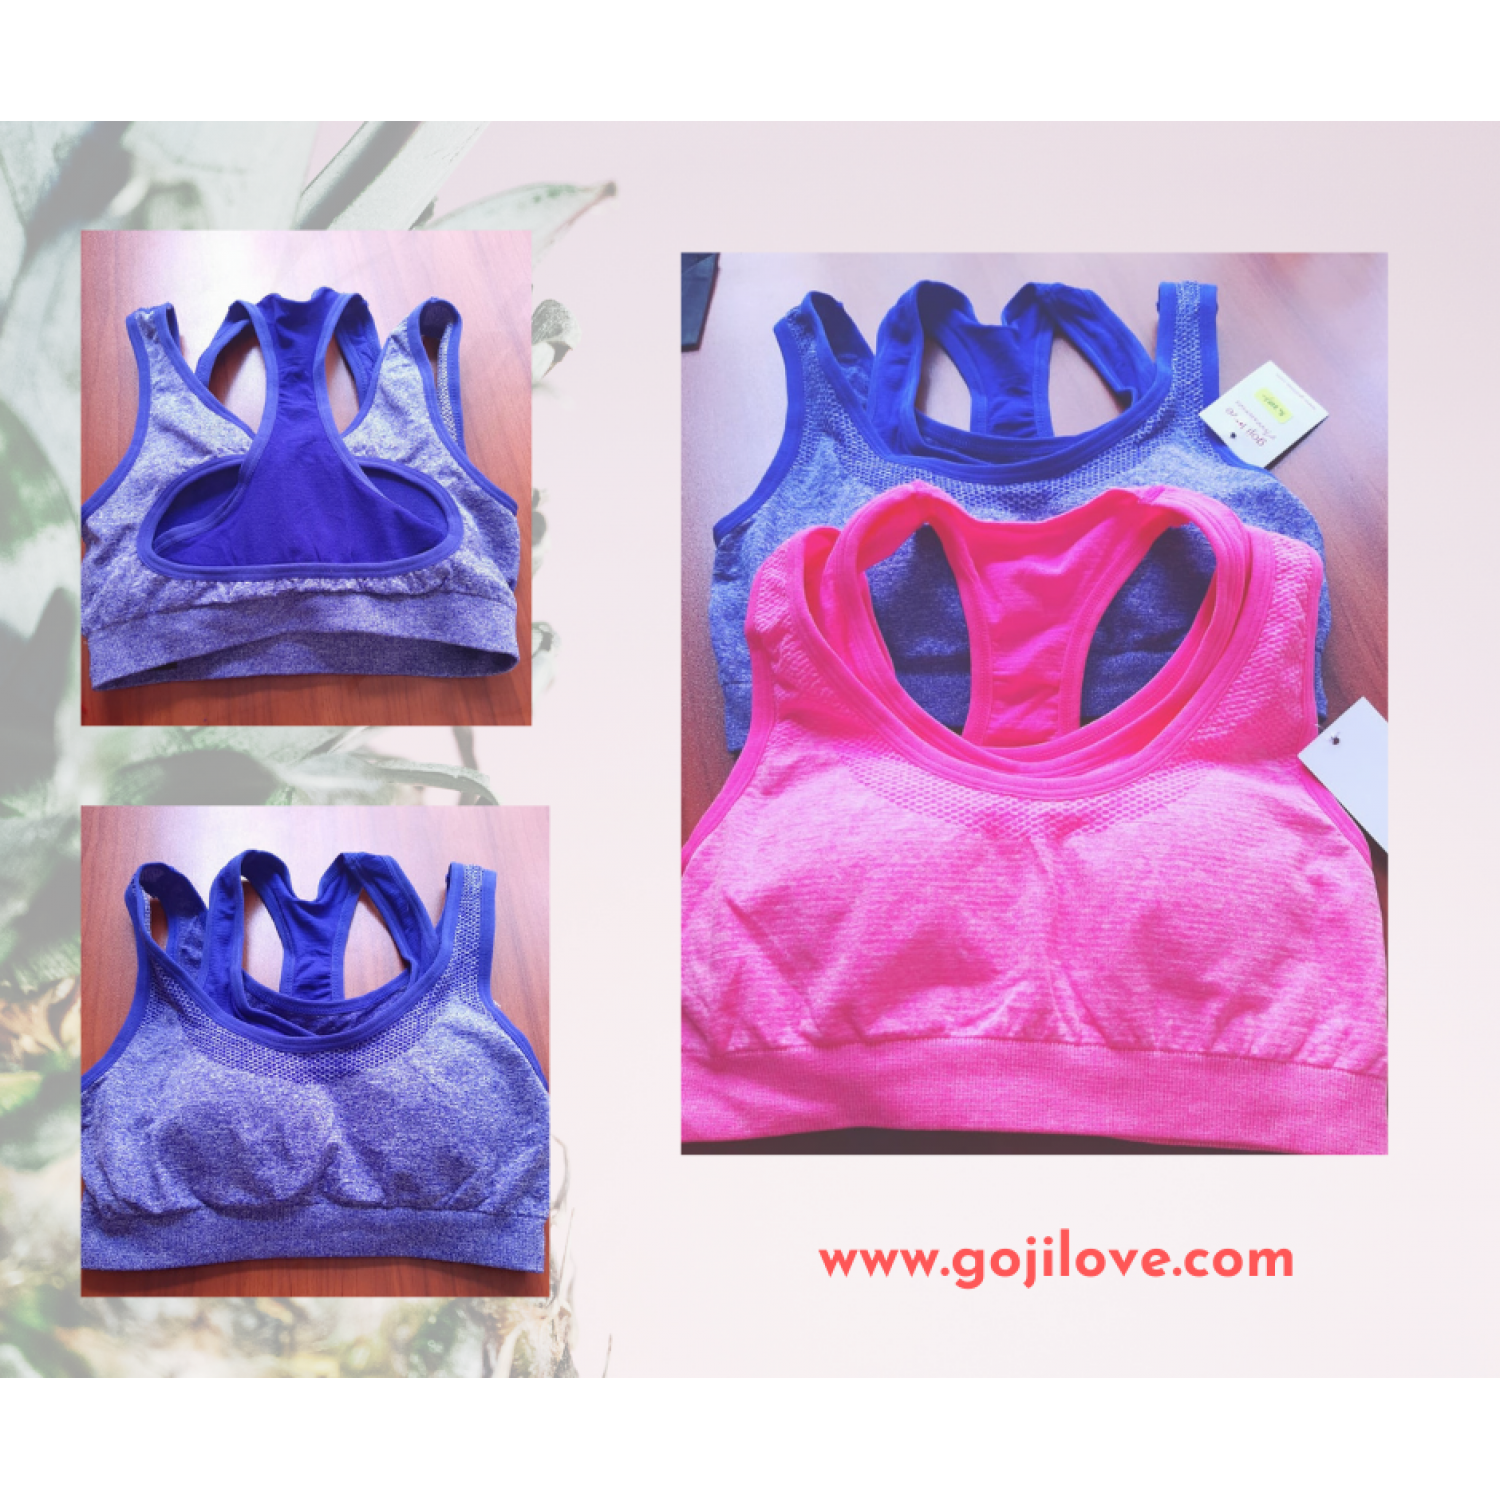 a Sports bra - Gojilove light sports bra